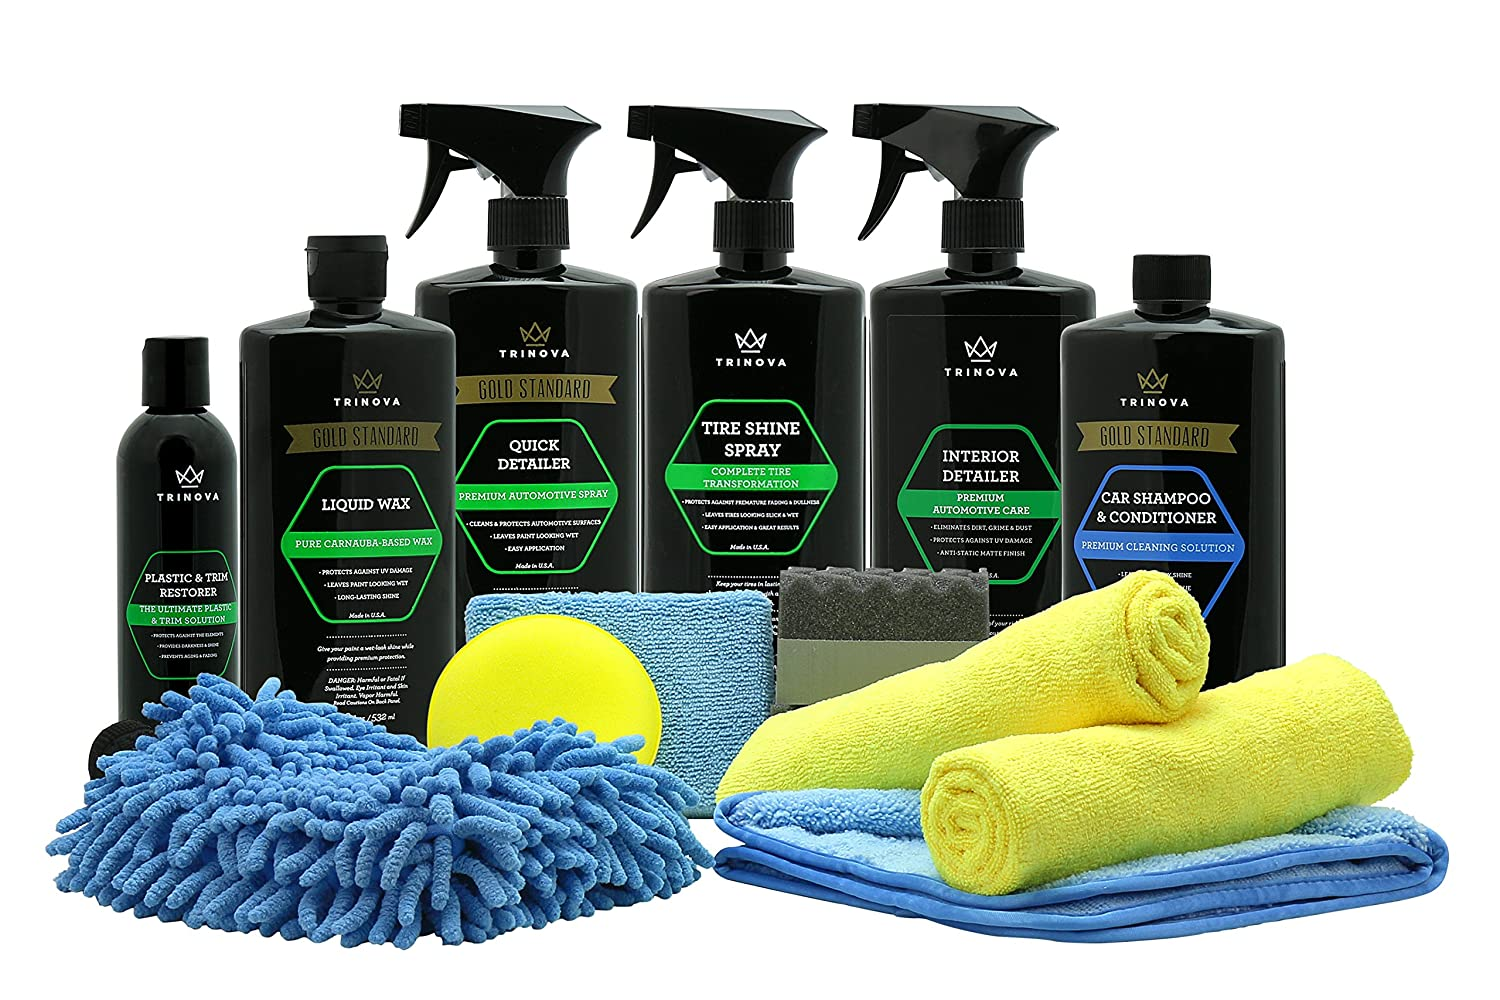 Professional Car Detailing Supplies >> Car Wash Kit Complete Detailing Supplies For Cleaning Soap Wax Tire Shine Trim Restorer Wash Mitt Applicator Microfiber Towel Best Value To